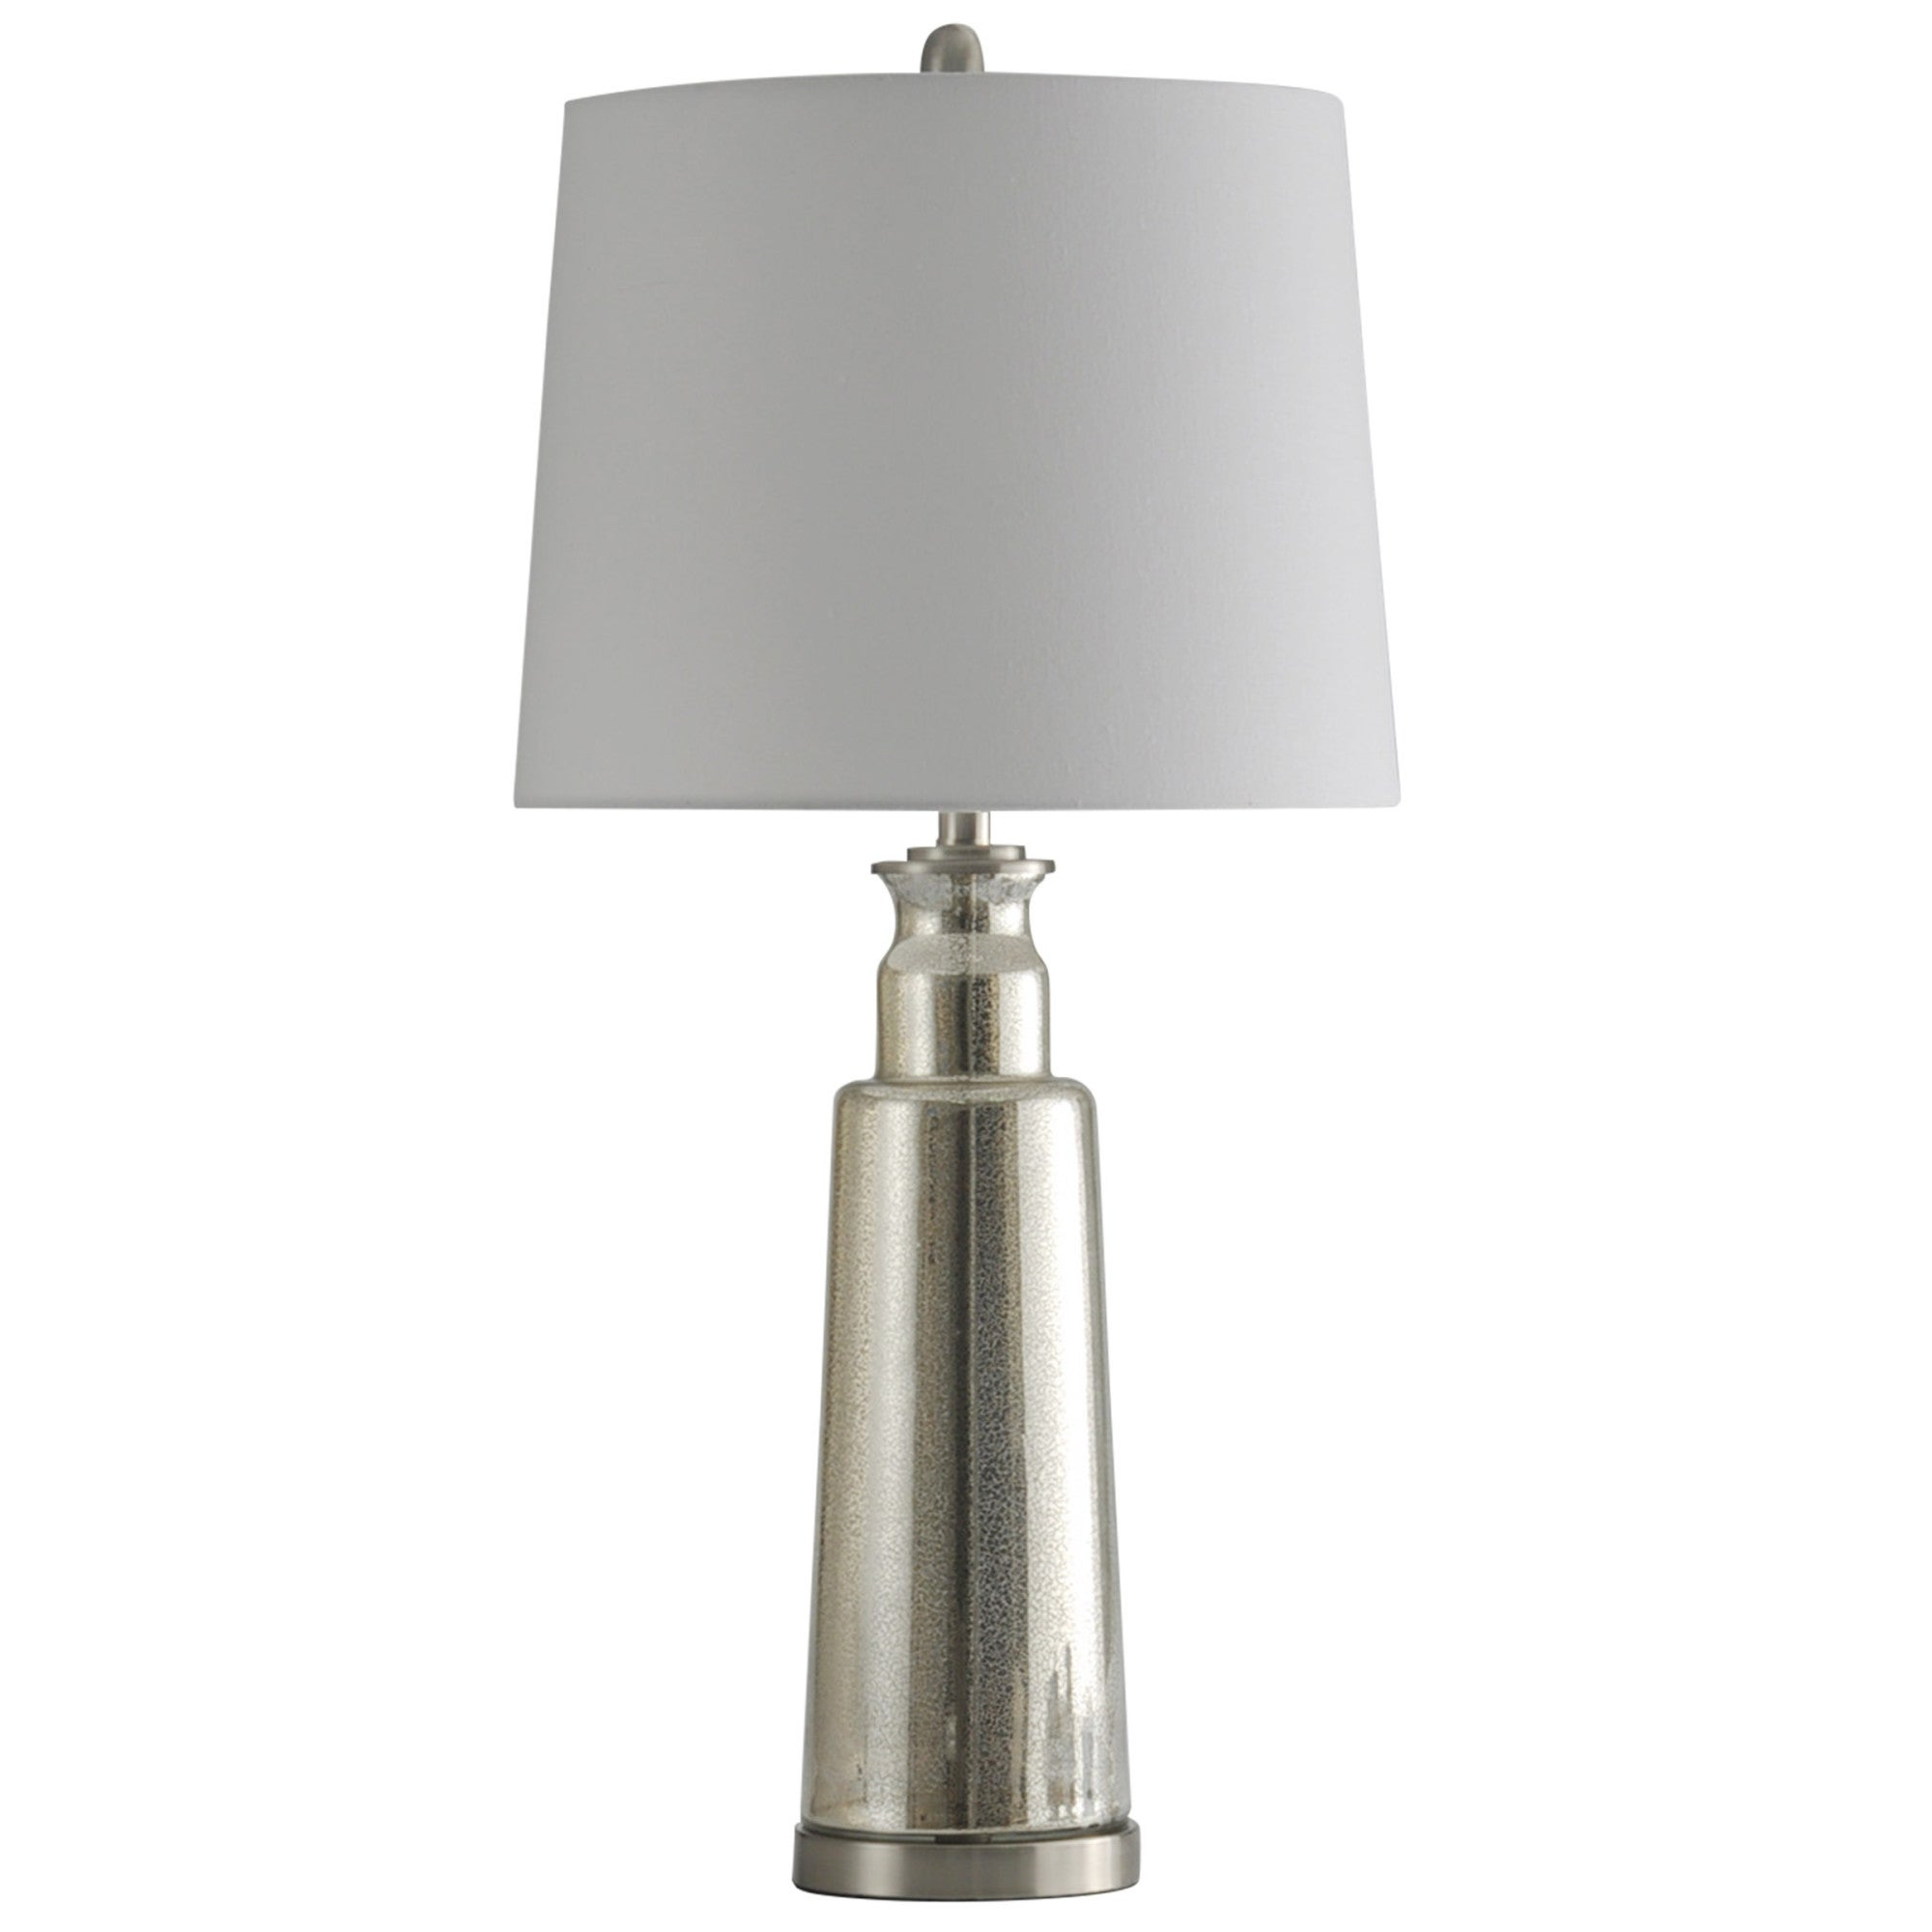 Delacora Sc L313850 Northbay 33 Tall Buffet Table Lamp With Hardback Fabric Shade Mercury Overstock 25651611